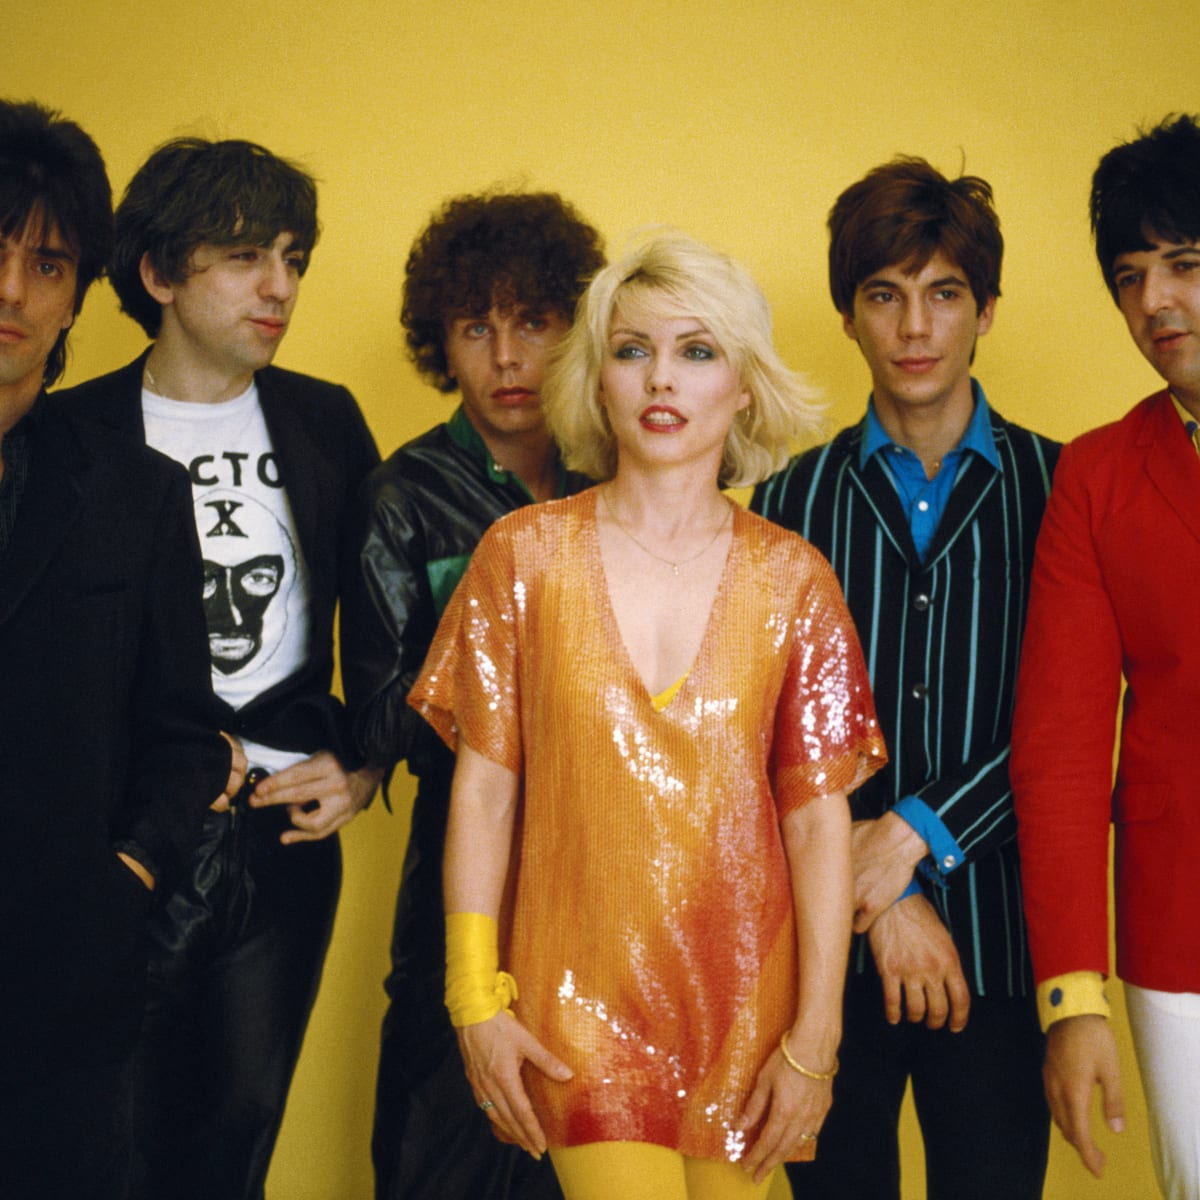 Blondie Recorded 'Autoamerican' to Help 'Resolve Racial Tensions' by Crossing Musical Genres - Biography